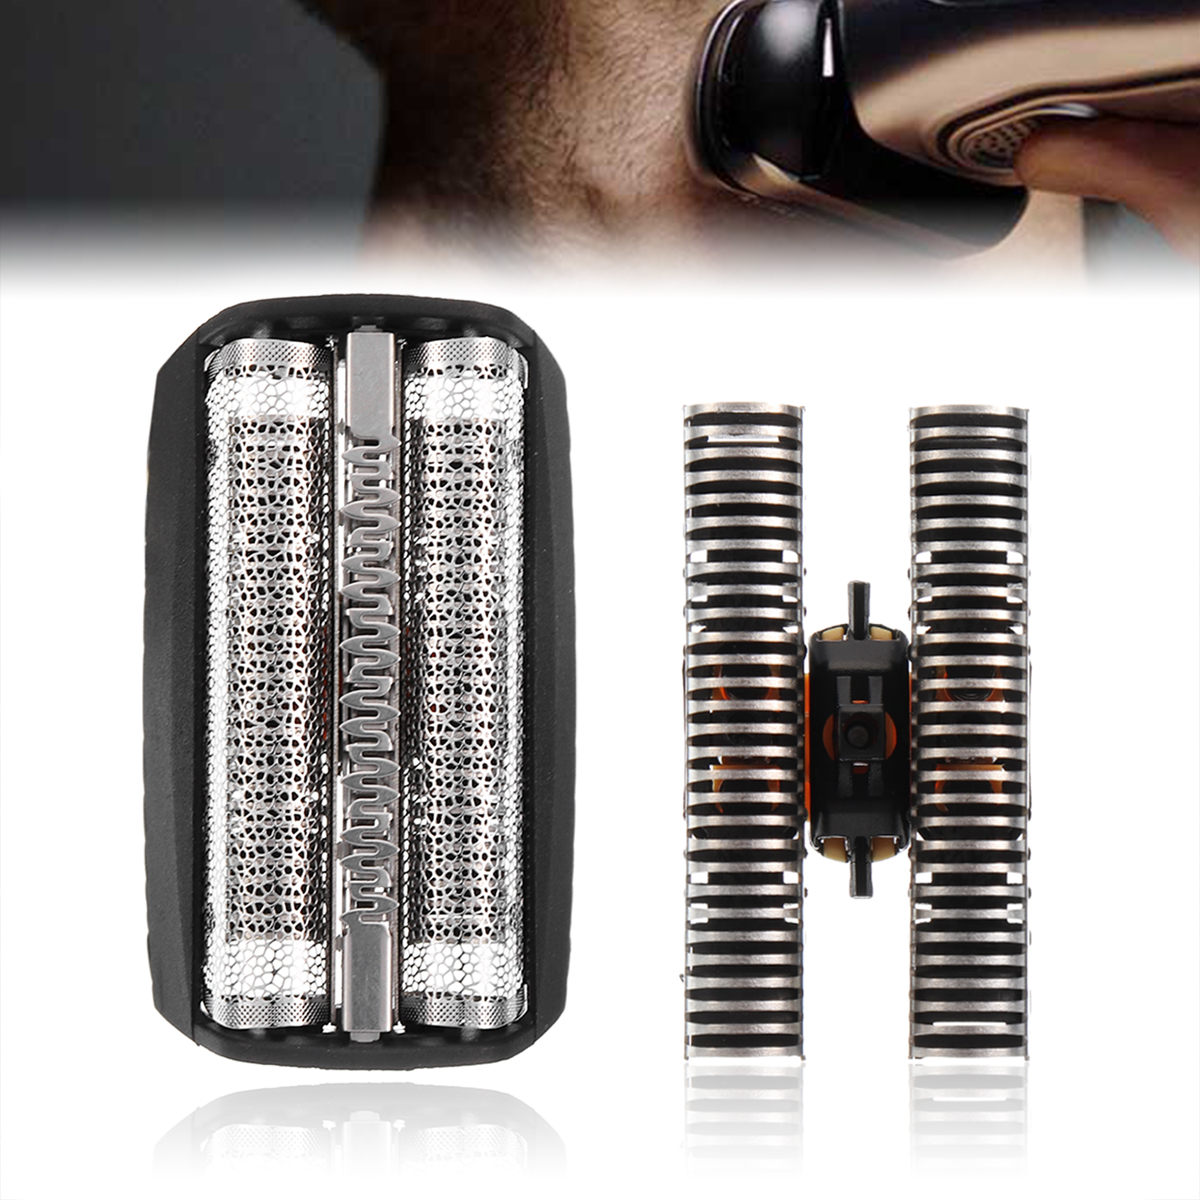 Durable 1Pc Shaver Replacement Film + 1Pc Razor Blade Shaving Head Set Foil 30B For BRAUN 310 330 Series 3 7000 4000